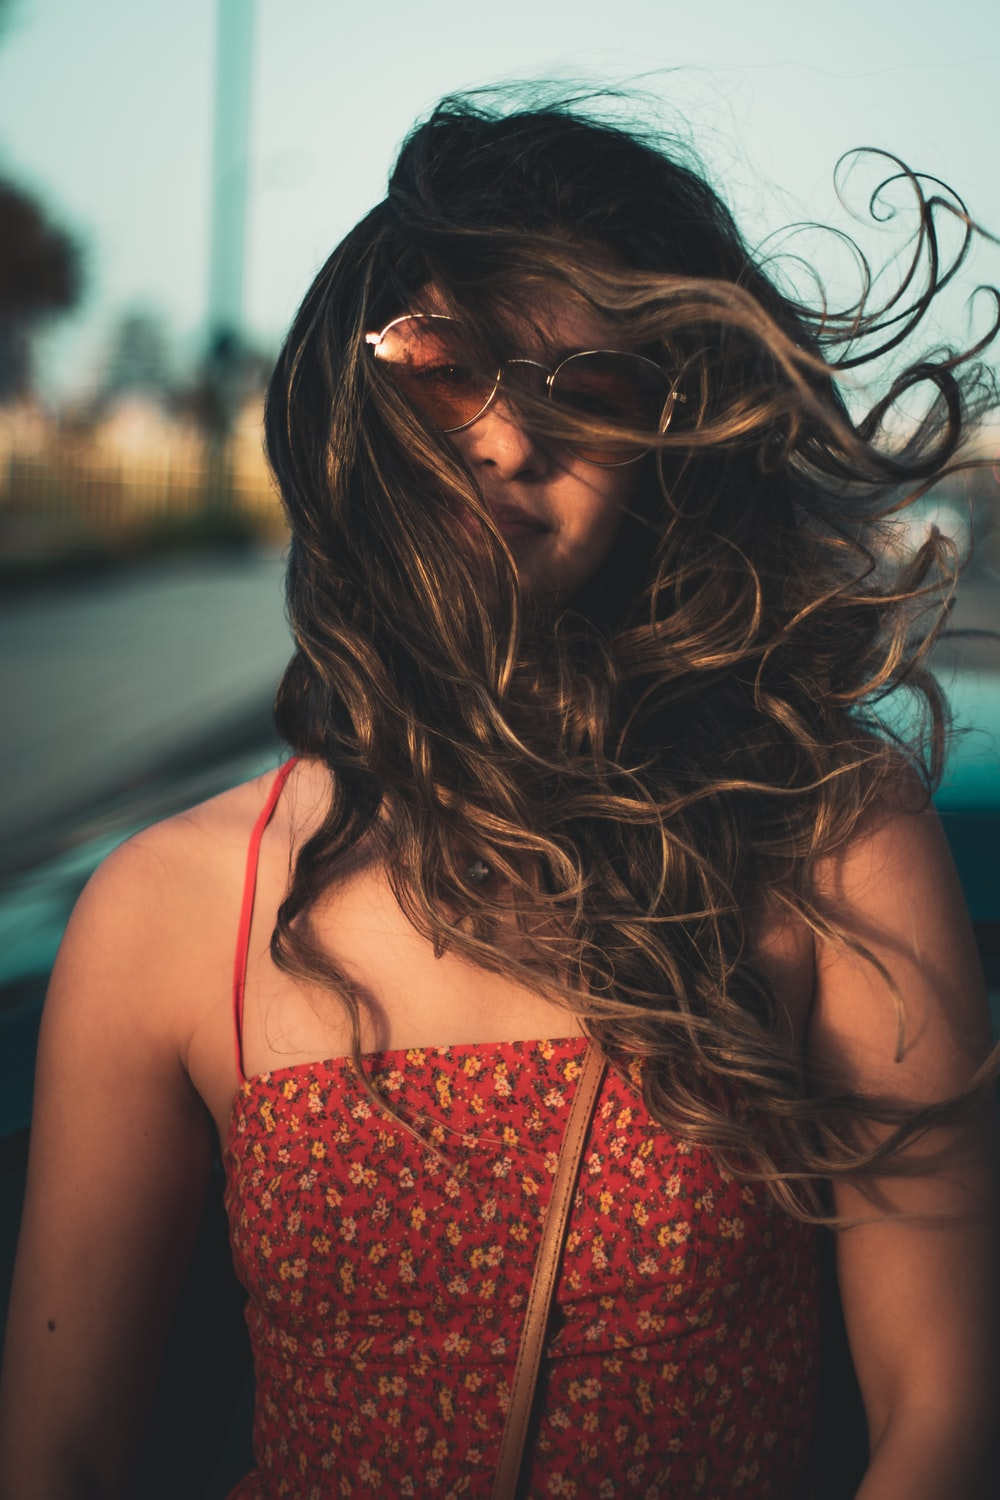 smiling woman's face covered by hair